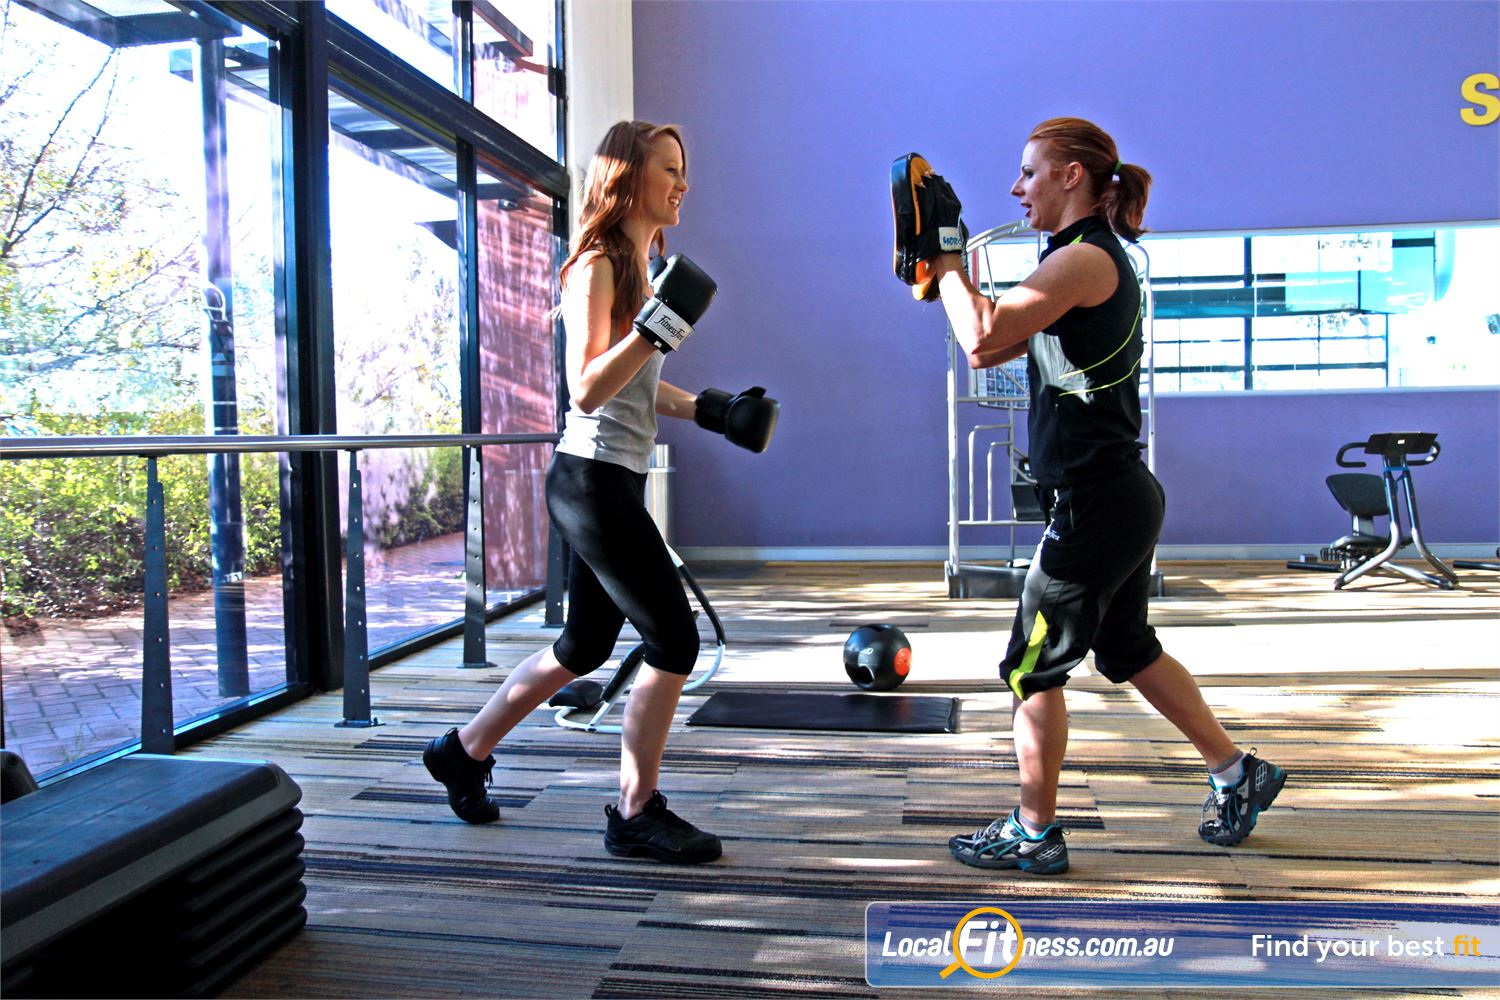 Goodlife Health Clubs Cannington Cannington personal trainers can vary your workouts to include cardio boxing.